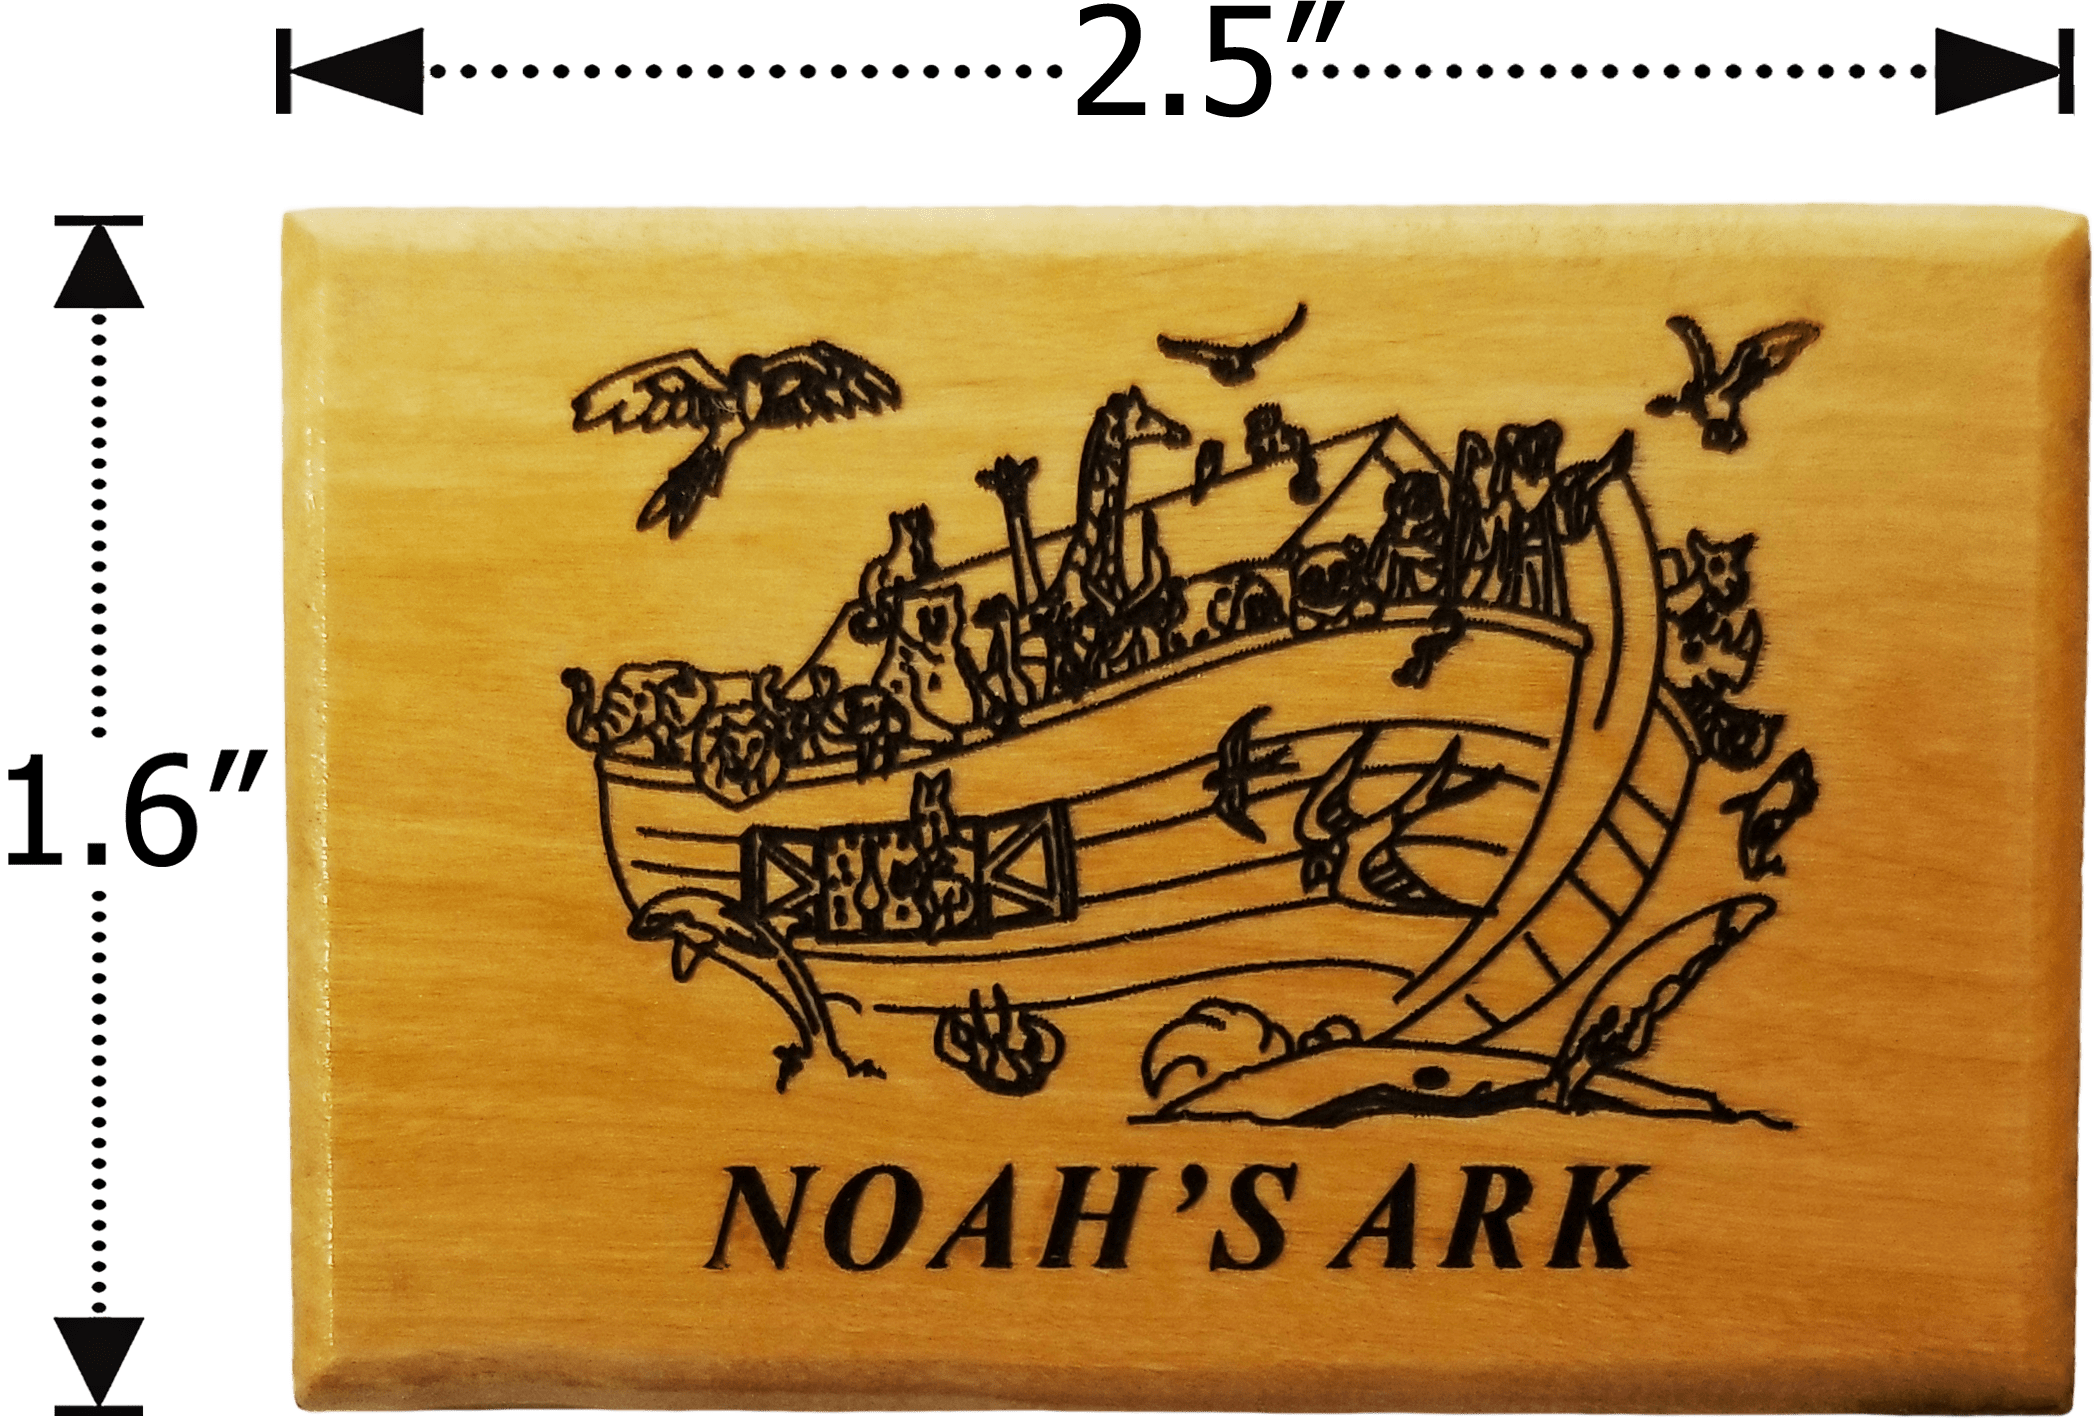 Holy Land Olive Wood Magnet - Noah's Ark with Birds - Logos Trading Post, Christian Gift